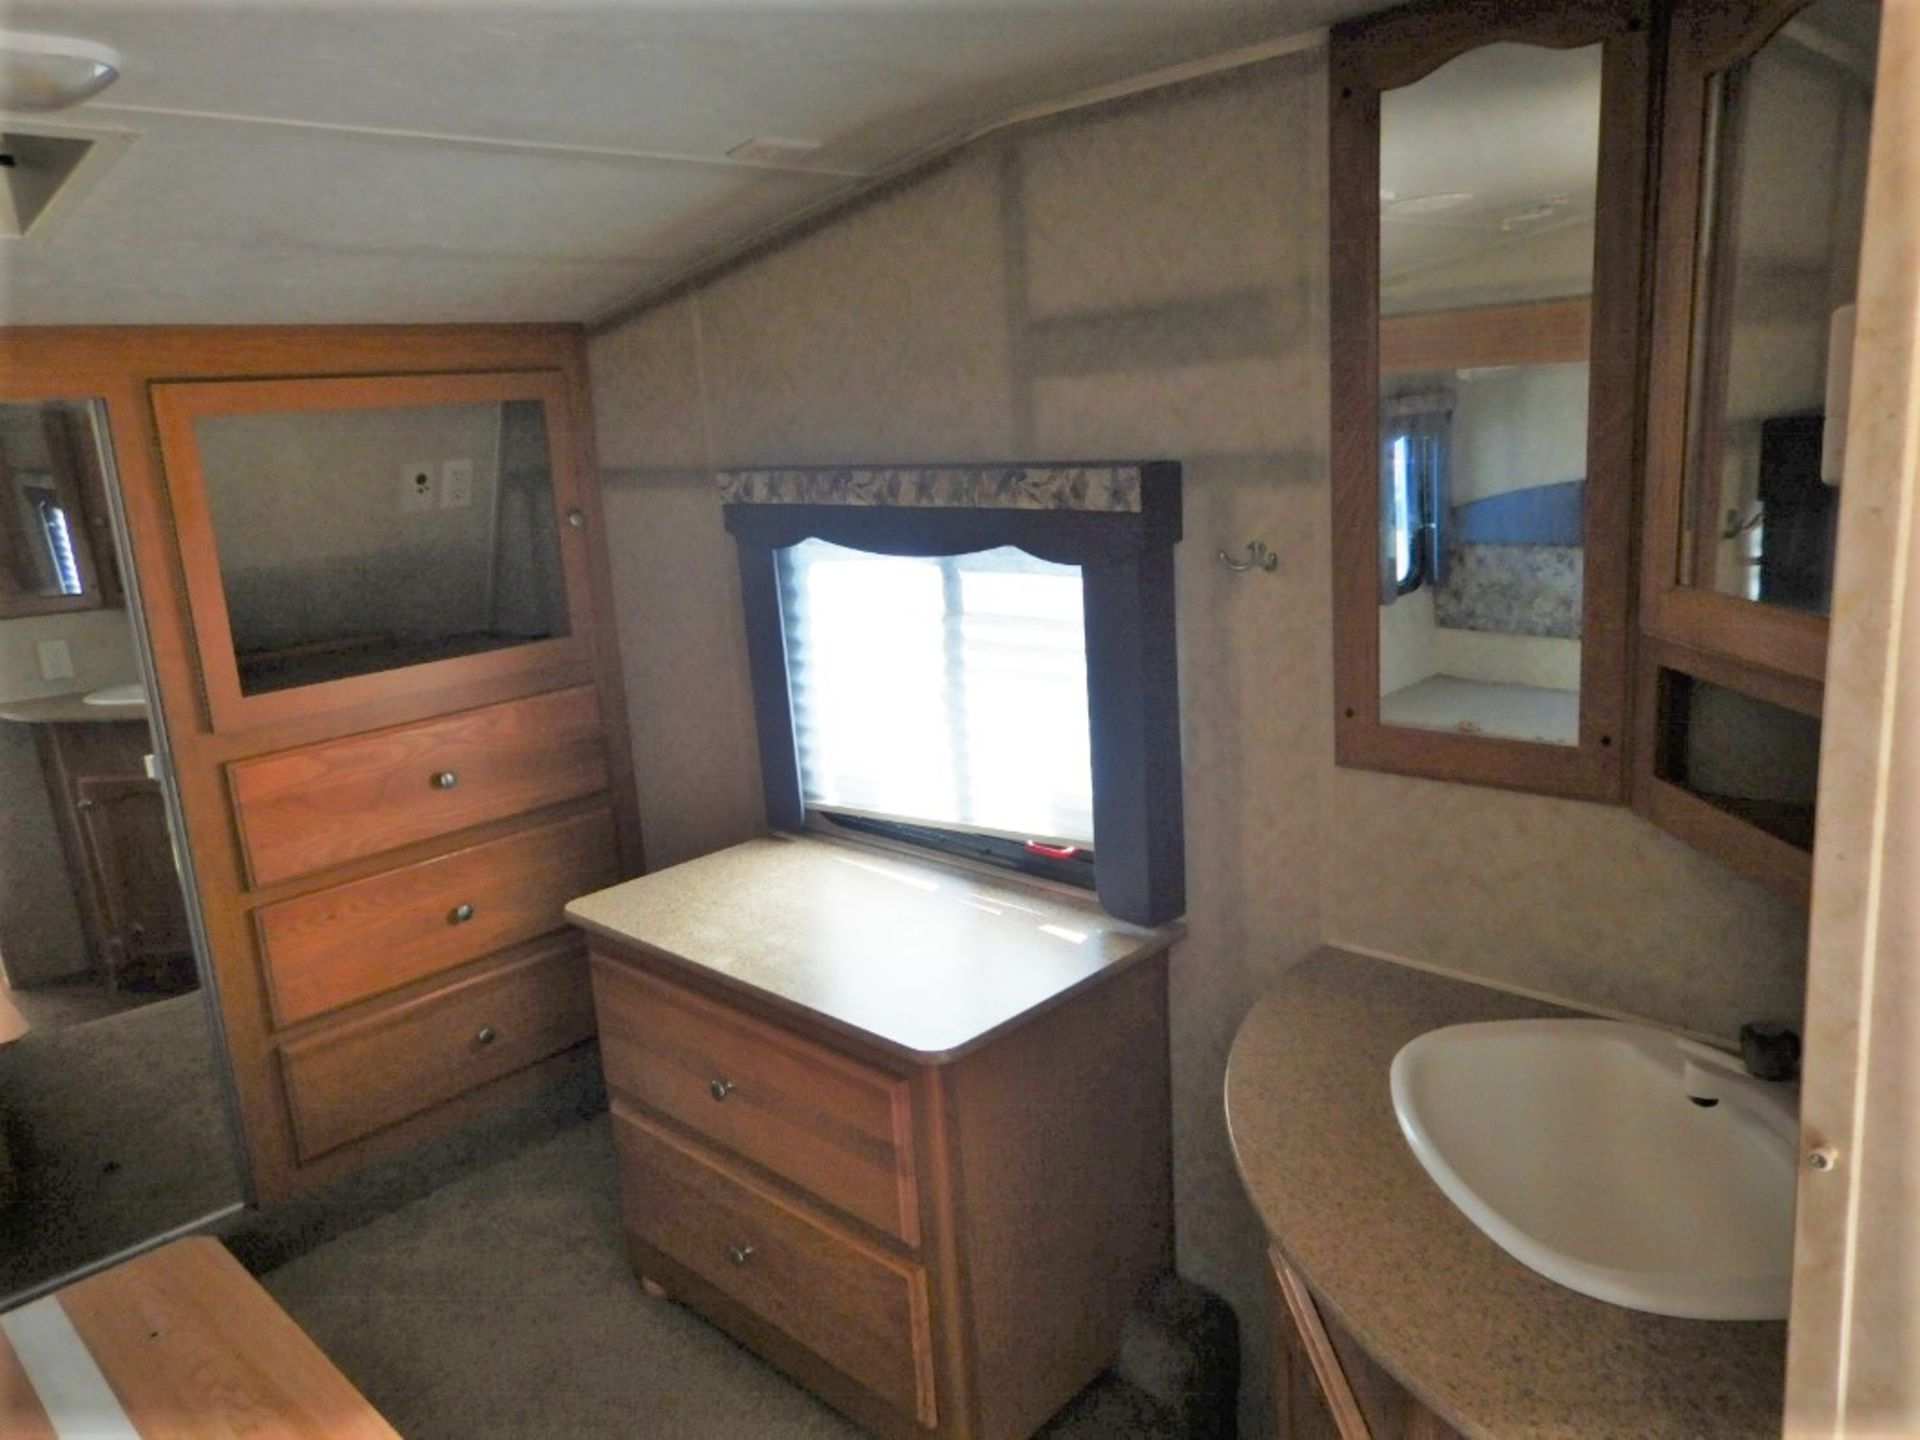 2006 DUTCHMEN DENALI 31RGBS/M5 5W HOLIDAY RV TRAILER S/N 47CFD1S226P616039 W/3-SLIDE-OUTS, AWNING, - Image 8 of 16